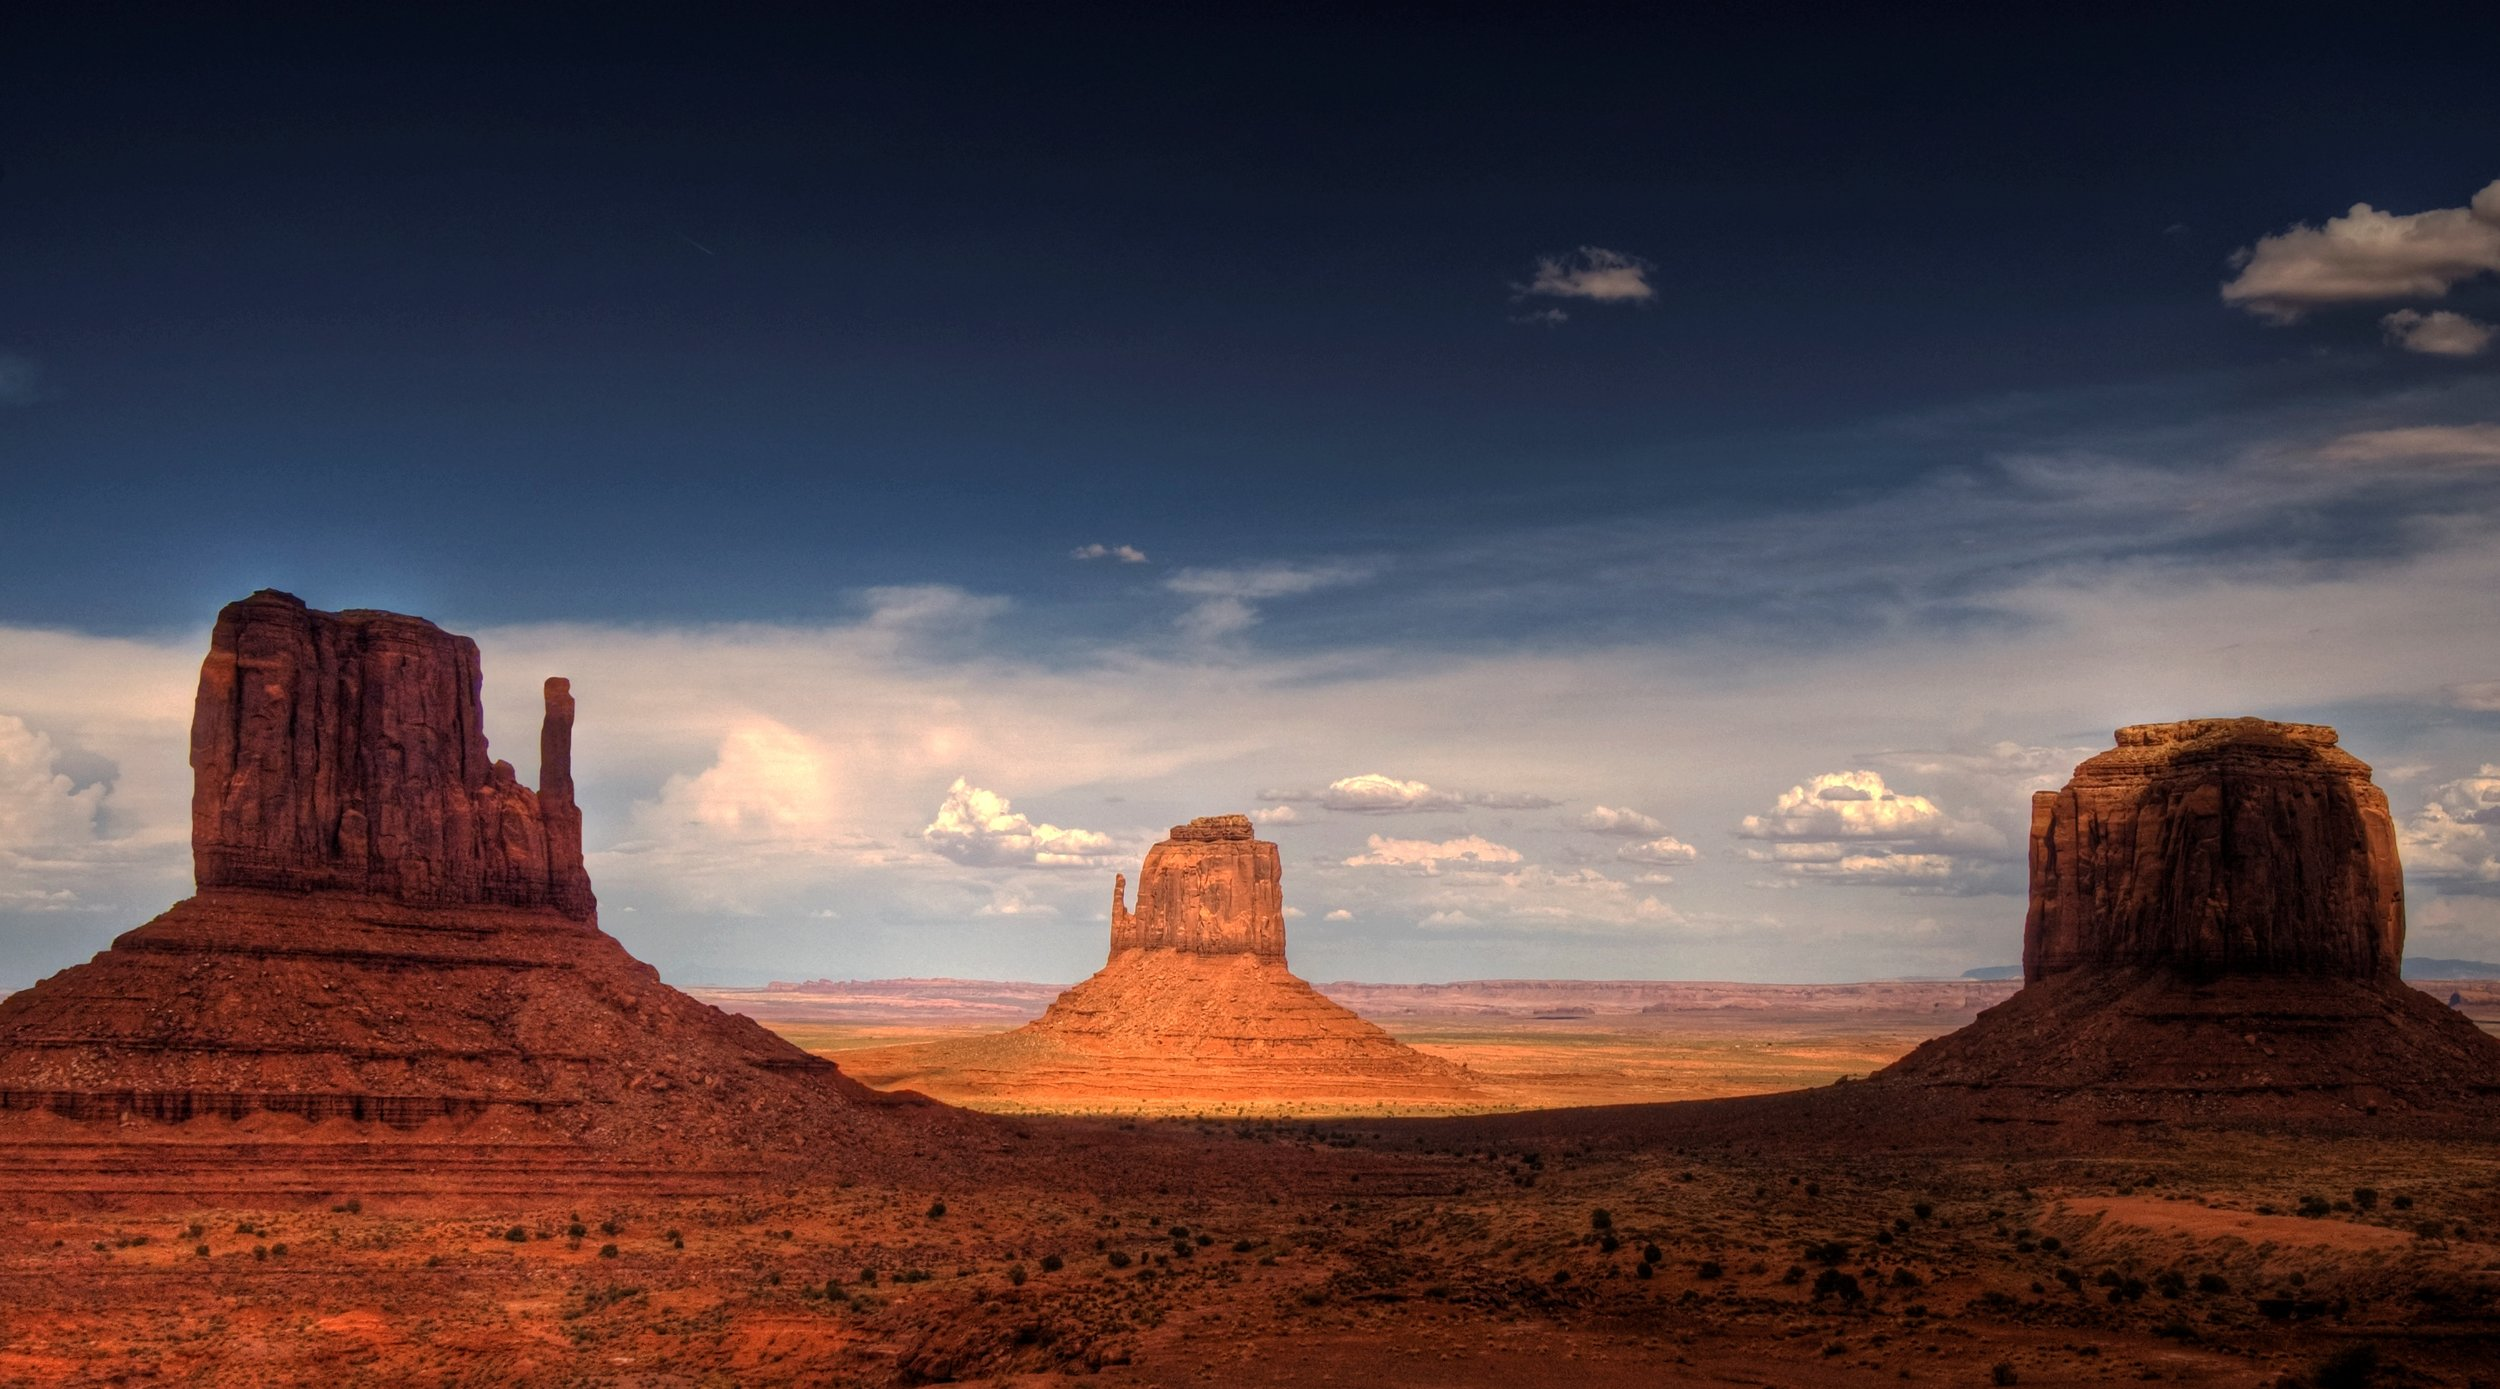 Monument_Valley,_late_afternoon_Cropped.jpg